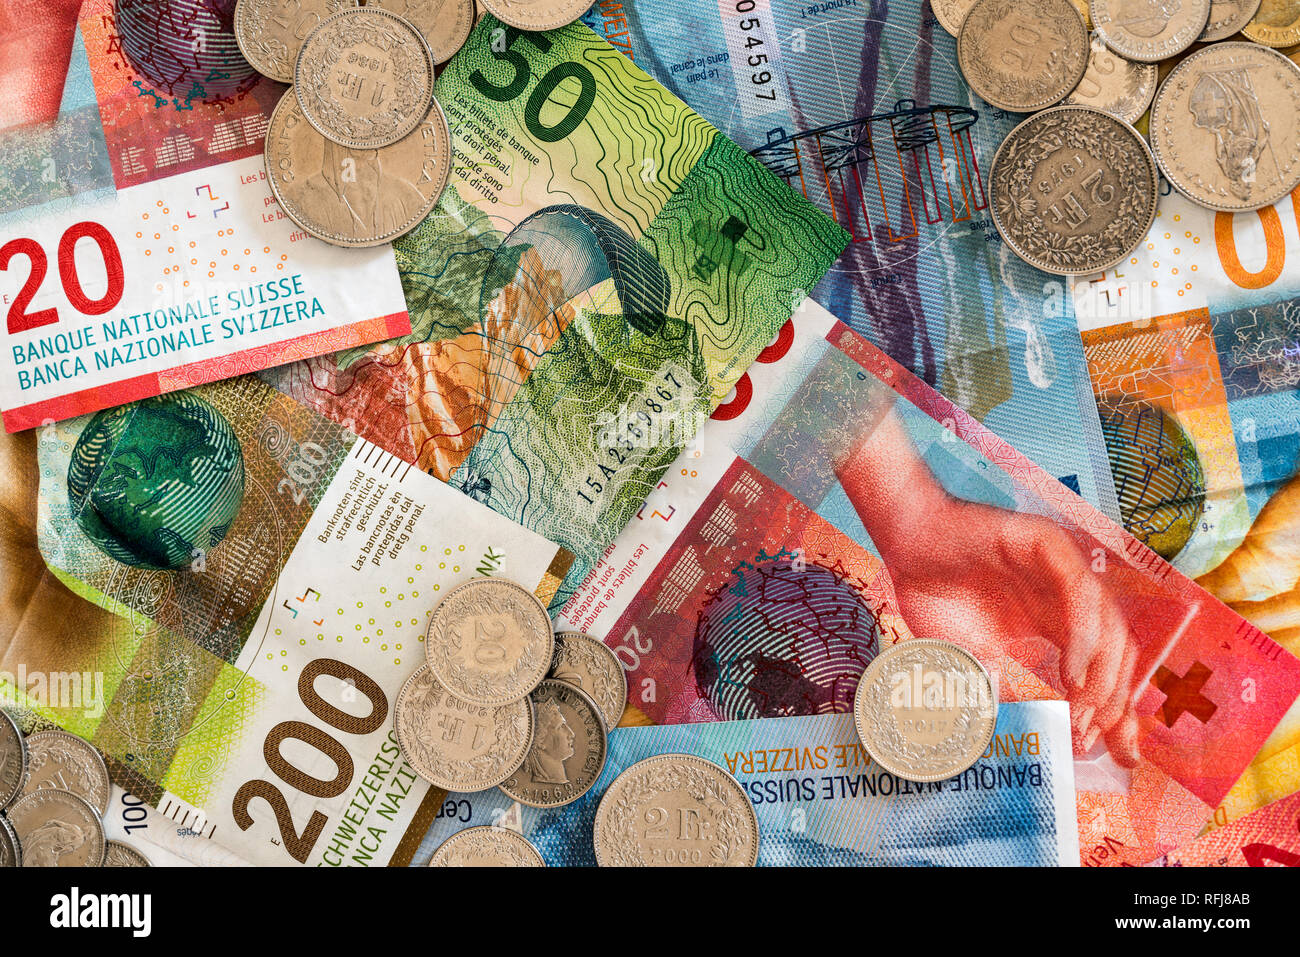 Swiss franc coins and bank notes in different denominations close up view - Stock Image